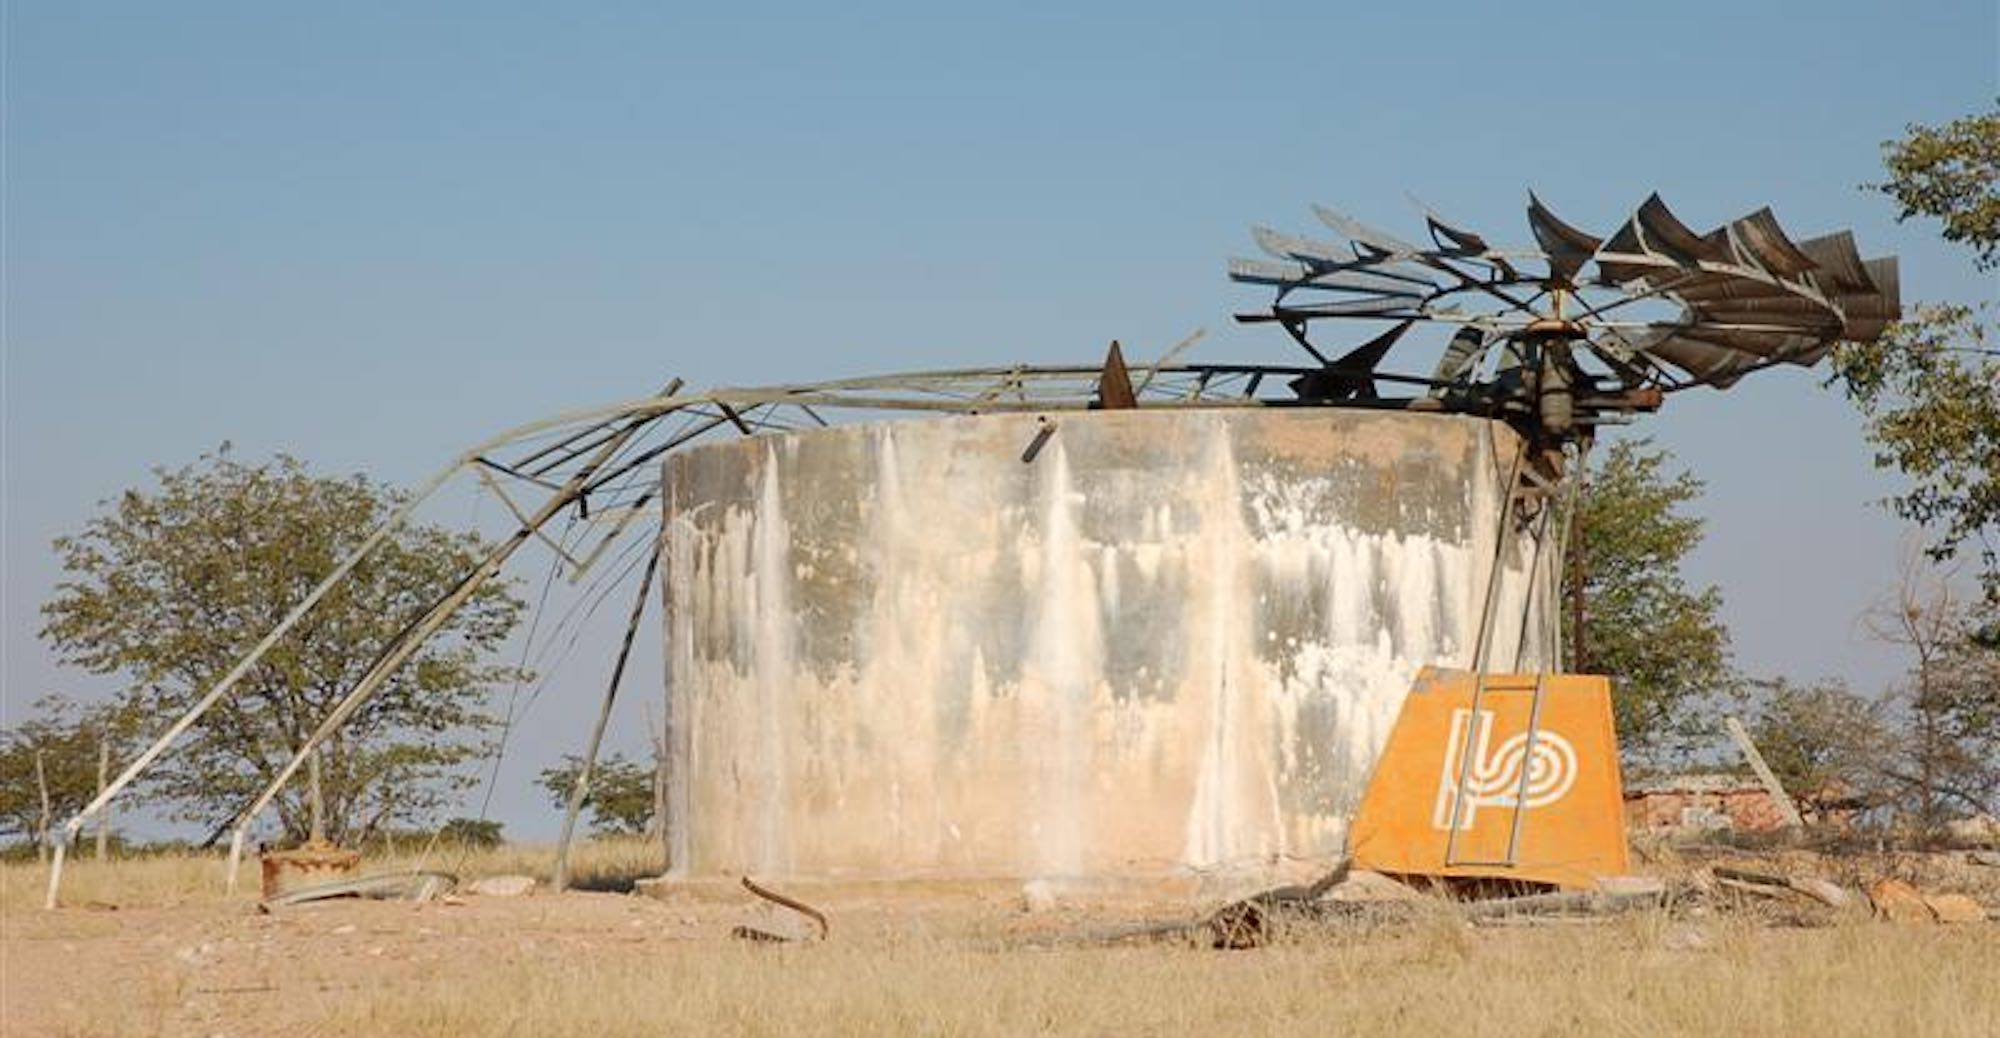 The broken remains of a windmill used to pump water from a borehole lies horizontally across a cement water tank.